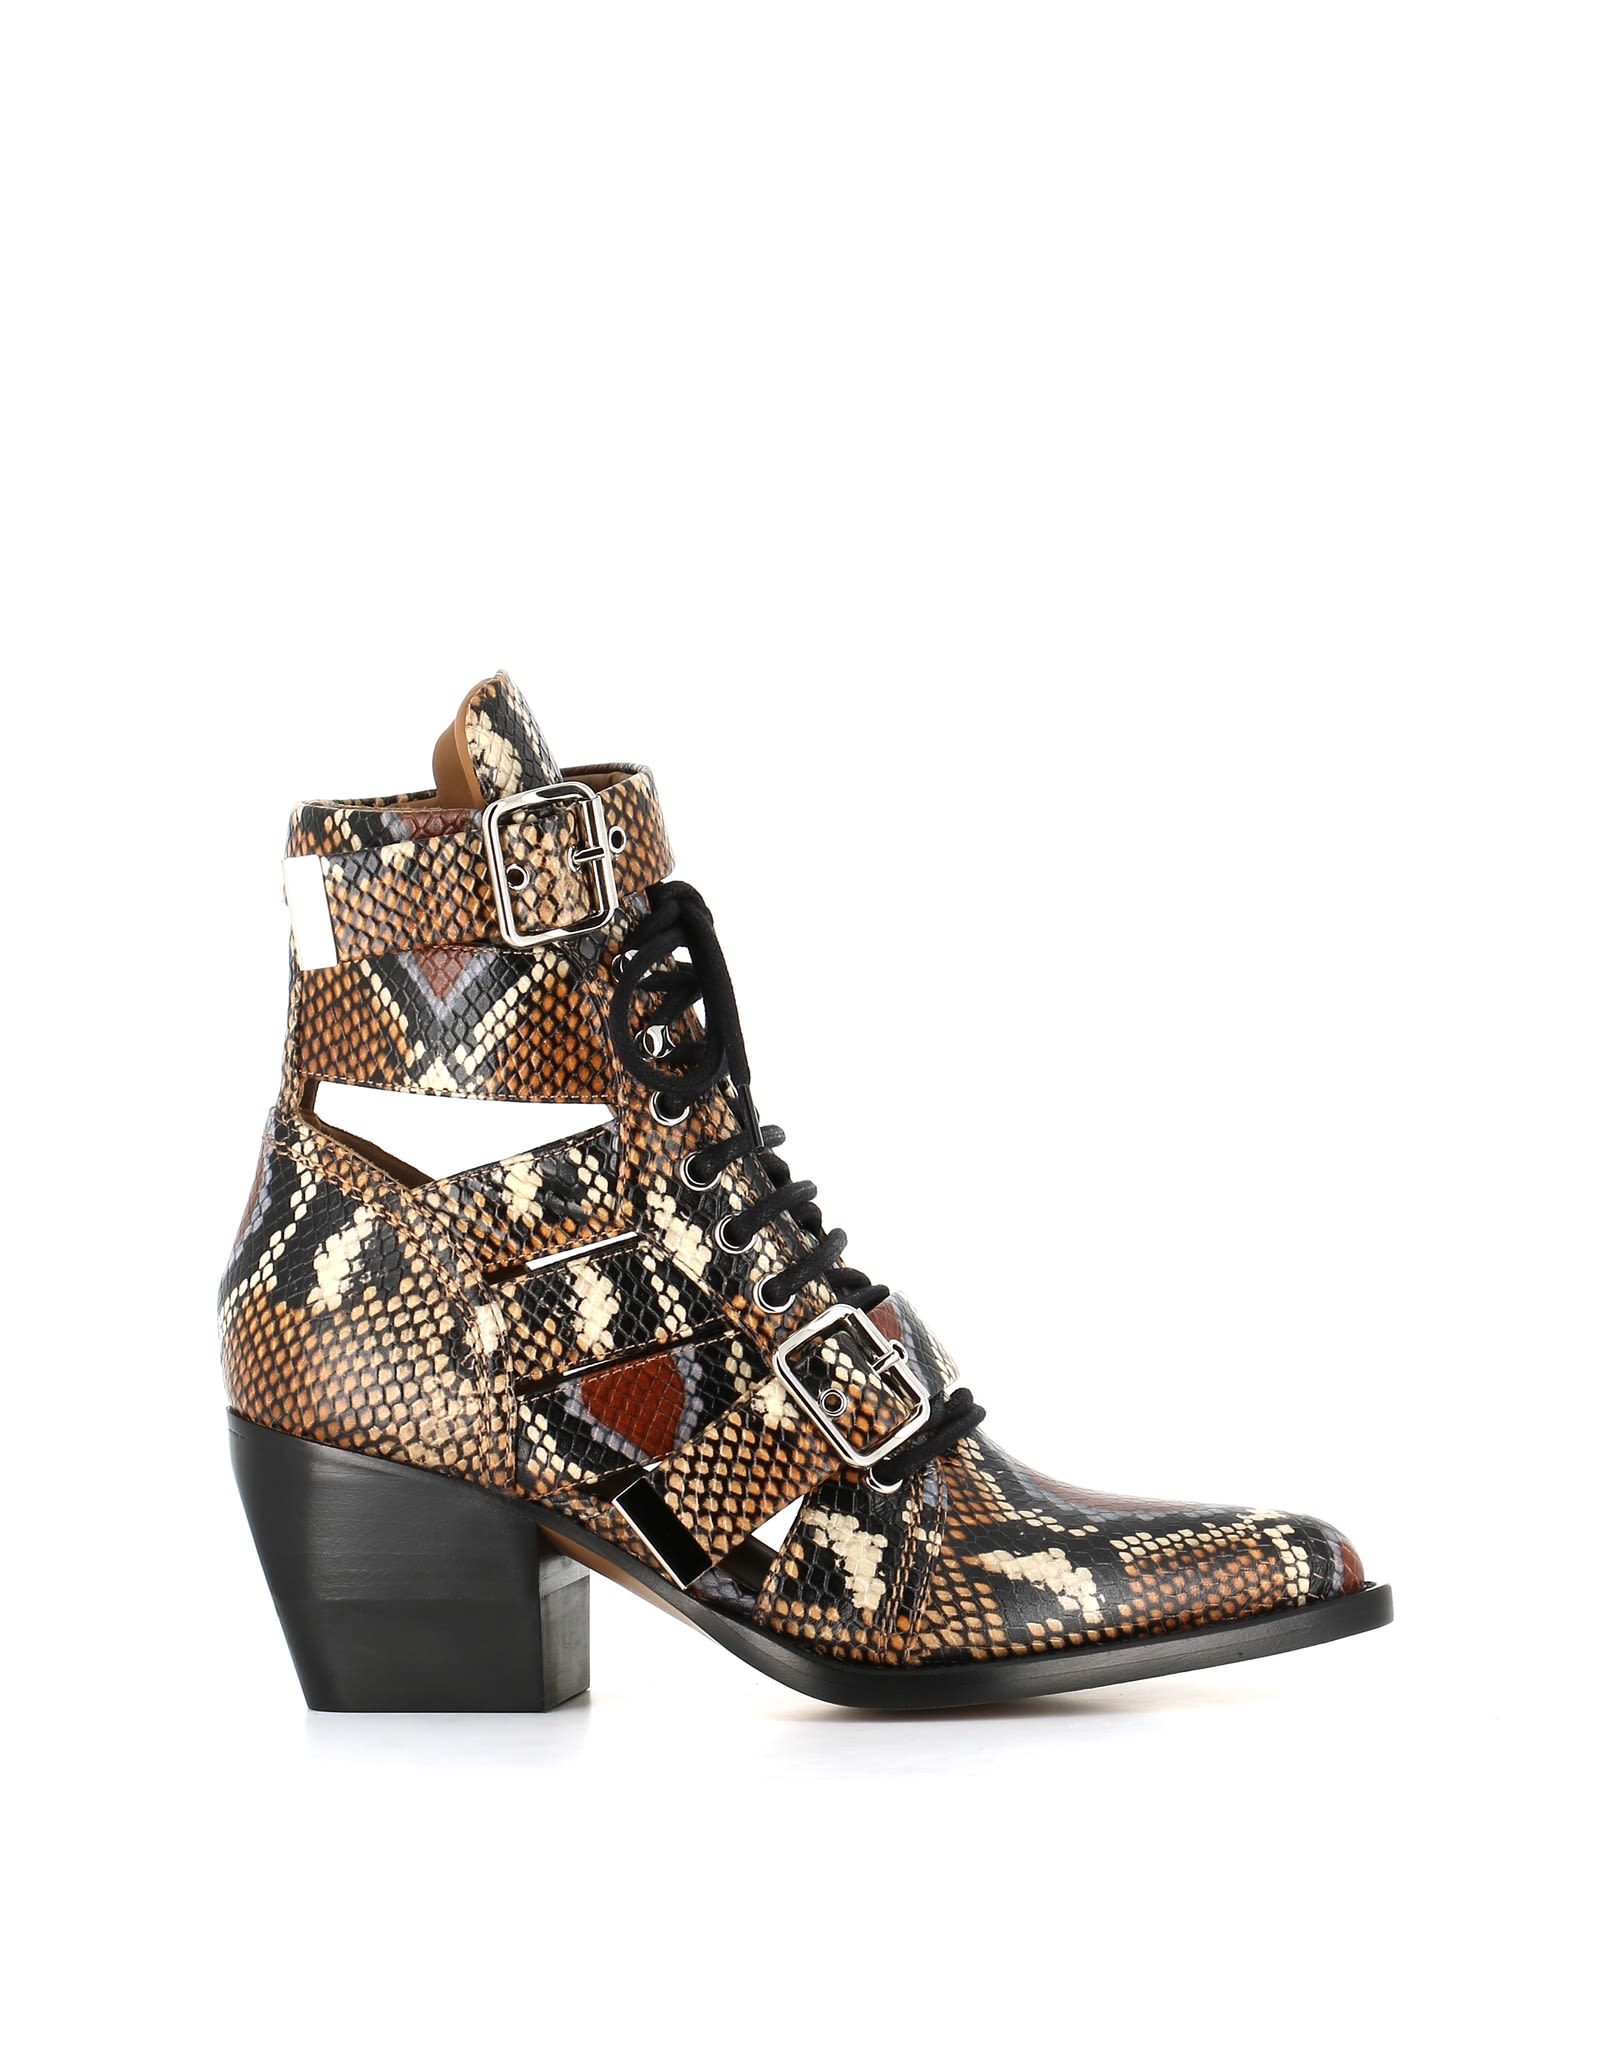 21fa056f0 ChloÉ Women s Rylee Snake-Embossed Leather Cutout Lace Up Booties In 15Za  Multi Purple